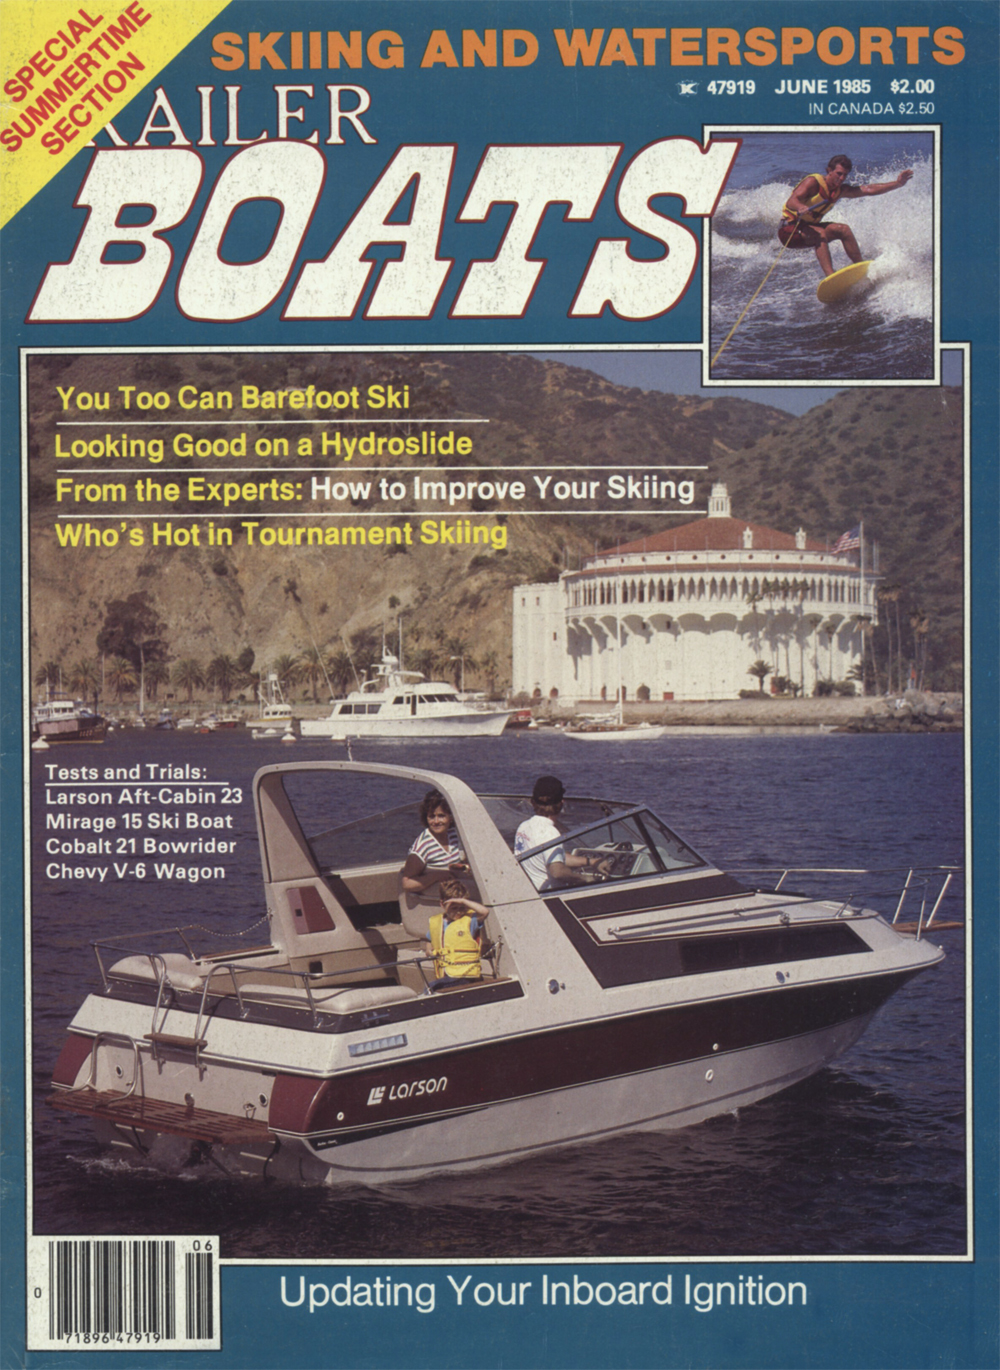 AWSKB85 Trailer Boats cover